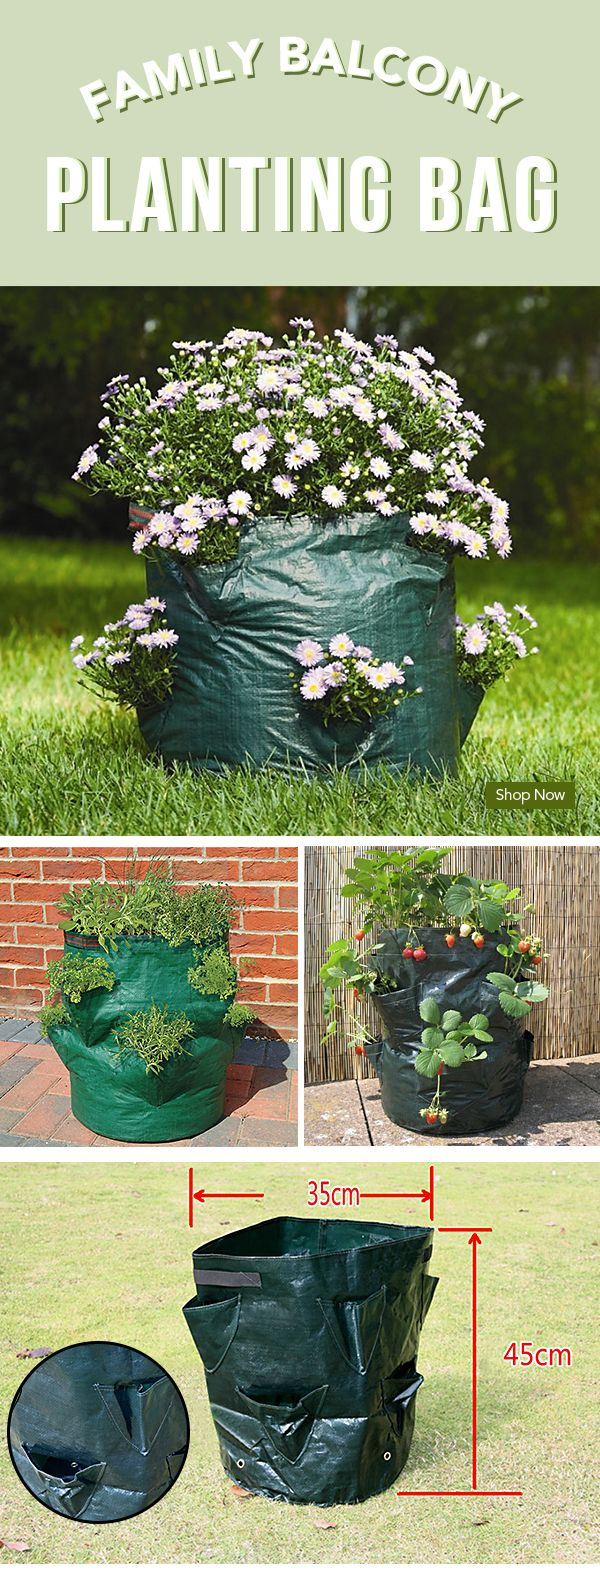 How to decorate your garden in Fall? $12.59 Family Balcony Strawberry Planting Bag Eight Bags of Herbs Vegetables Three-dimensional Planting Bag